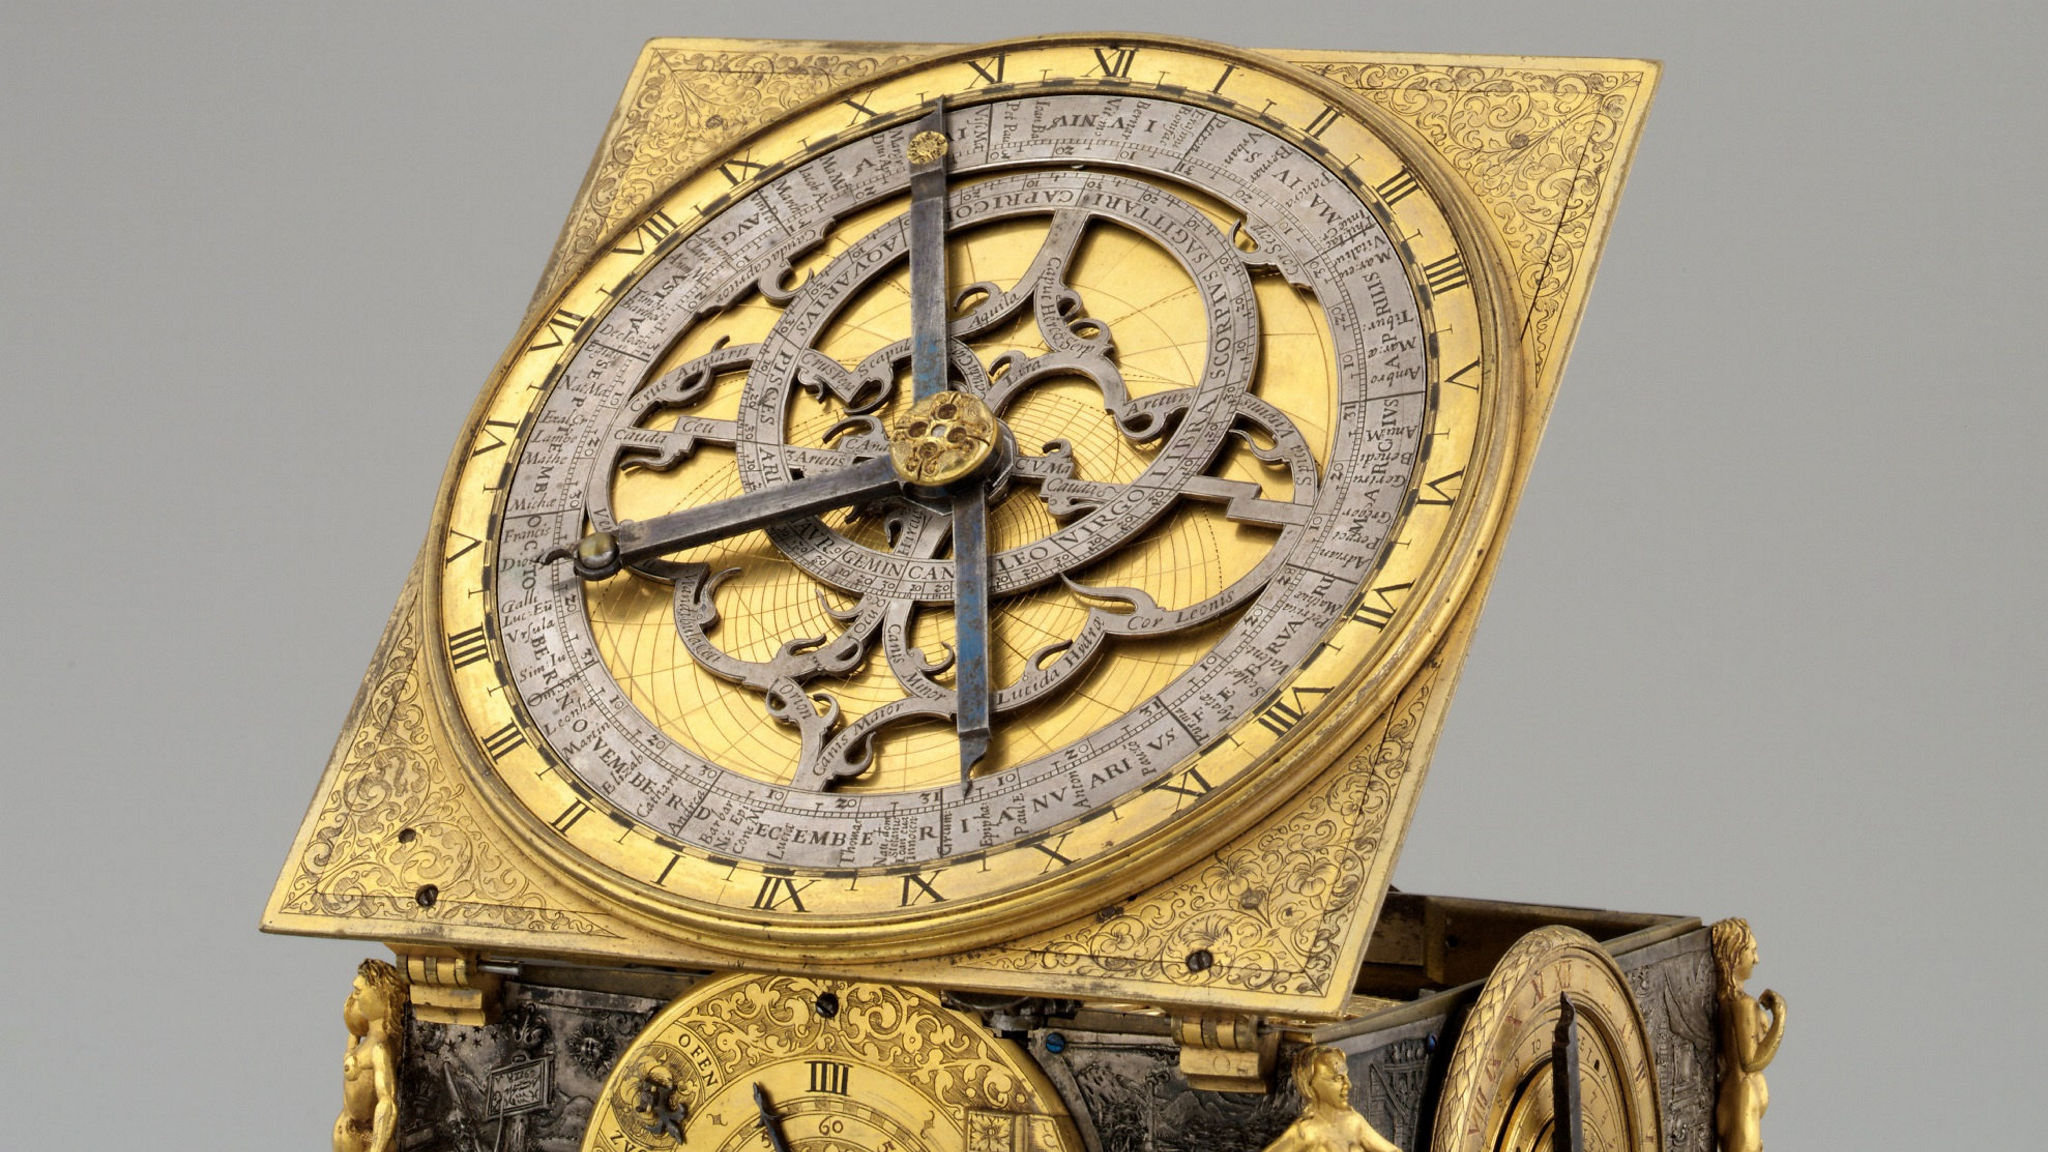 Making Marvels at the Met: mechanical bling that's fit for a king